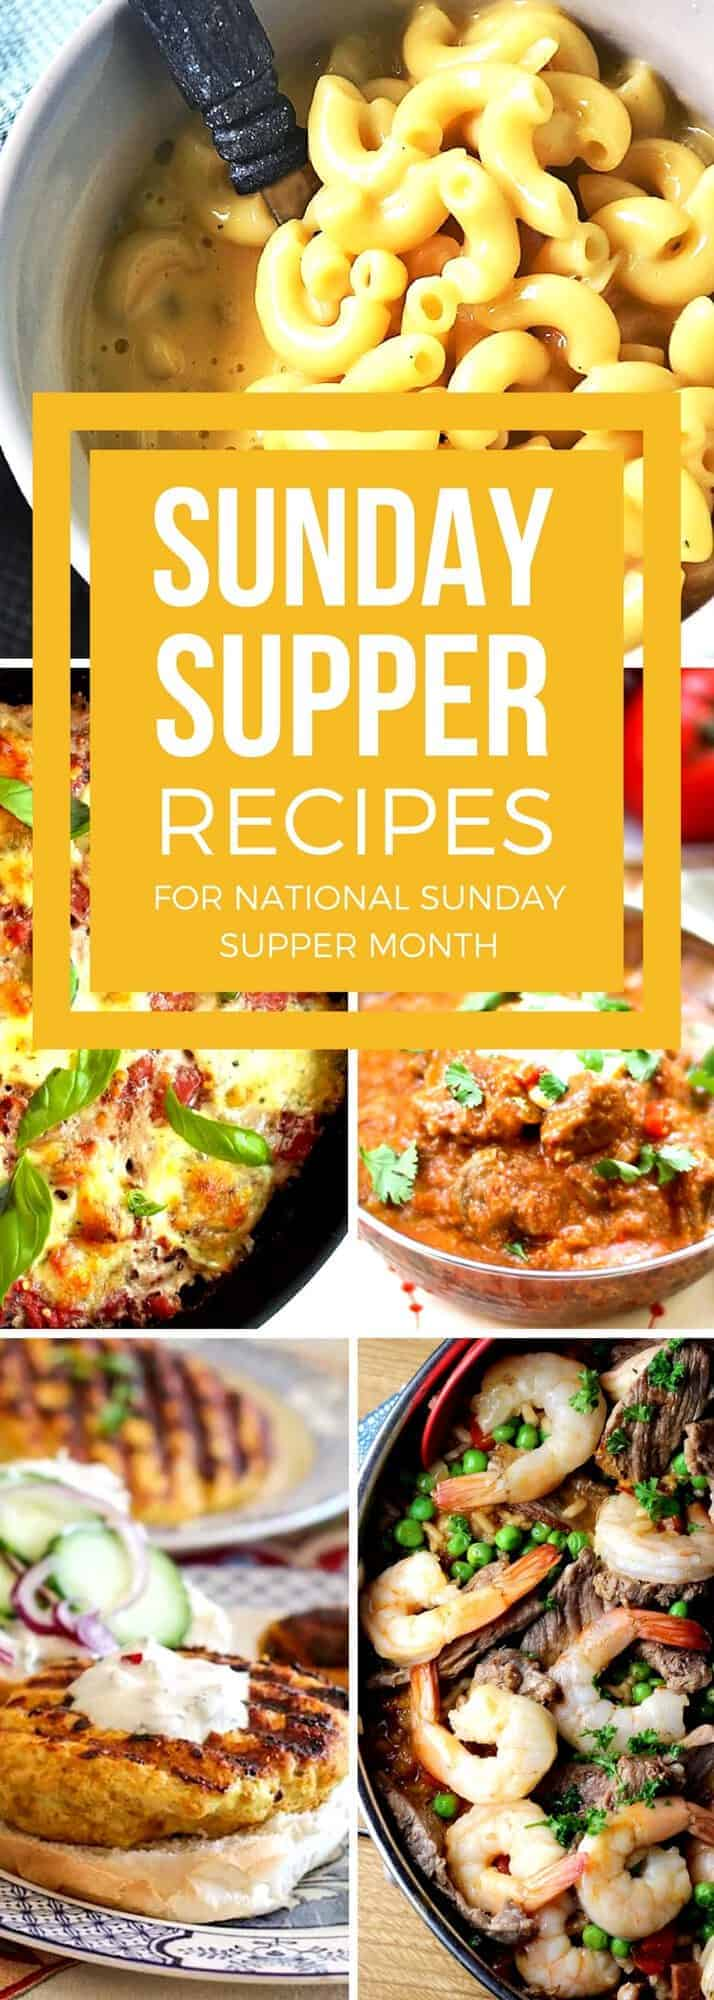 Bring your family back to the dinner table with our favorite Sunday supper recipes. These easy recipes are timeless classics that you and your family will love! With choices from delicious baked casseroles and pastas to flavorful chicken and beef recipes, your perfect family dinner will be waiting at the table to bring everyone together. #SundaySupper